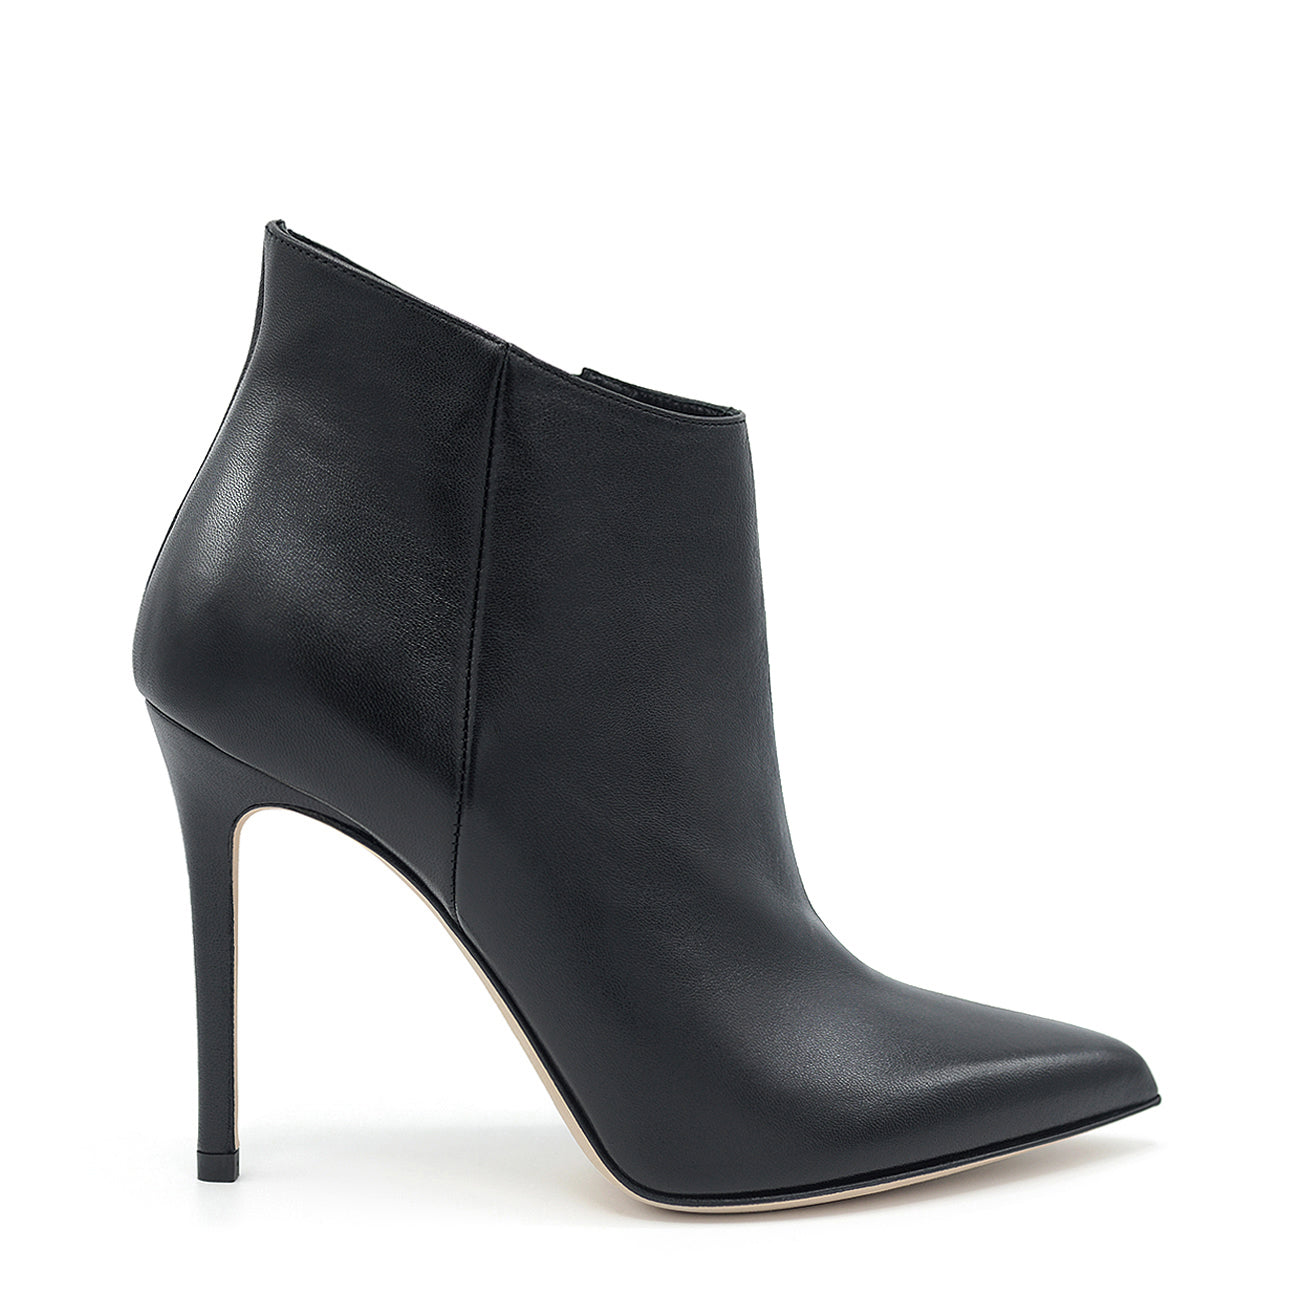 Melody. <br> Timeless high-heel black nappa leather ankle boots